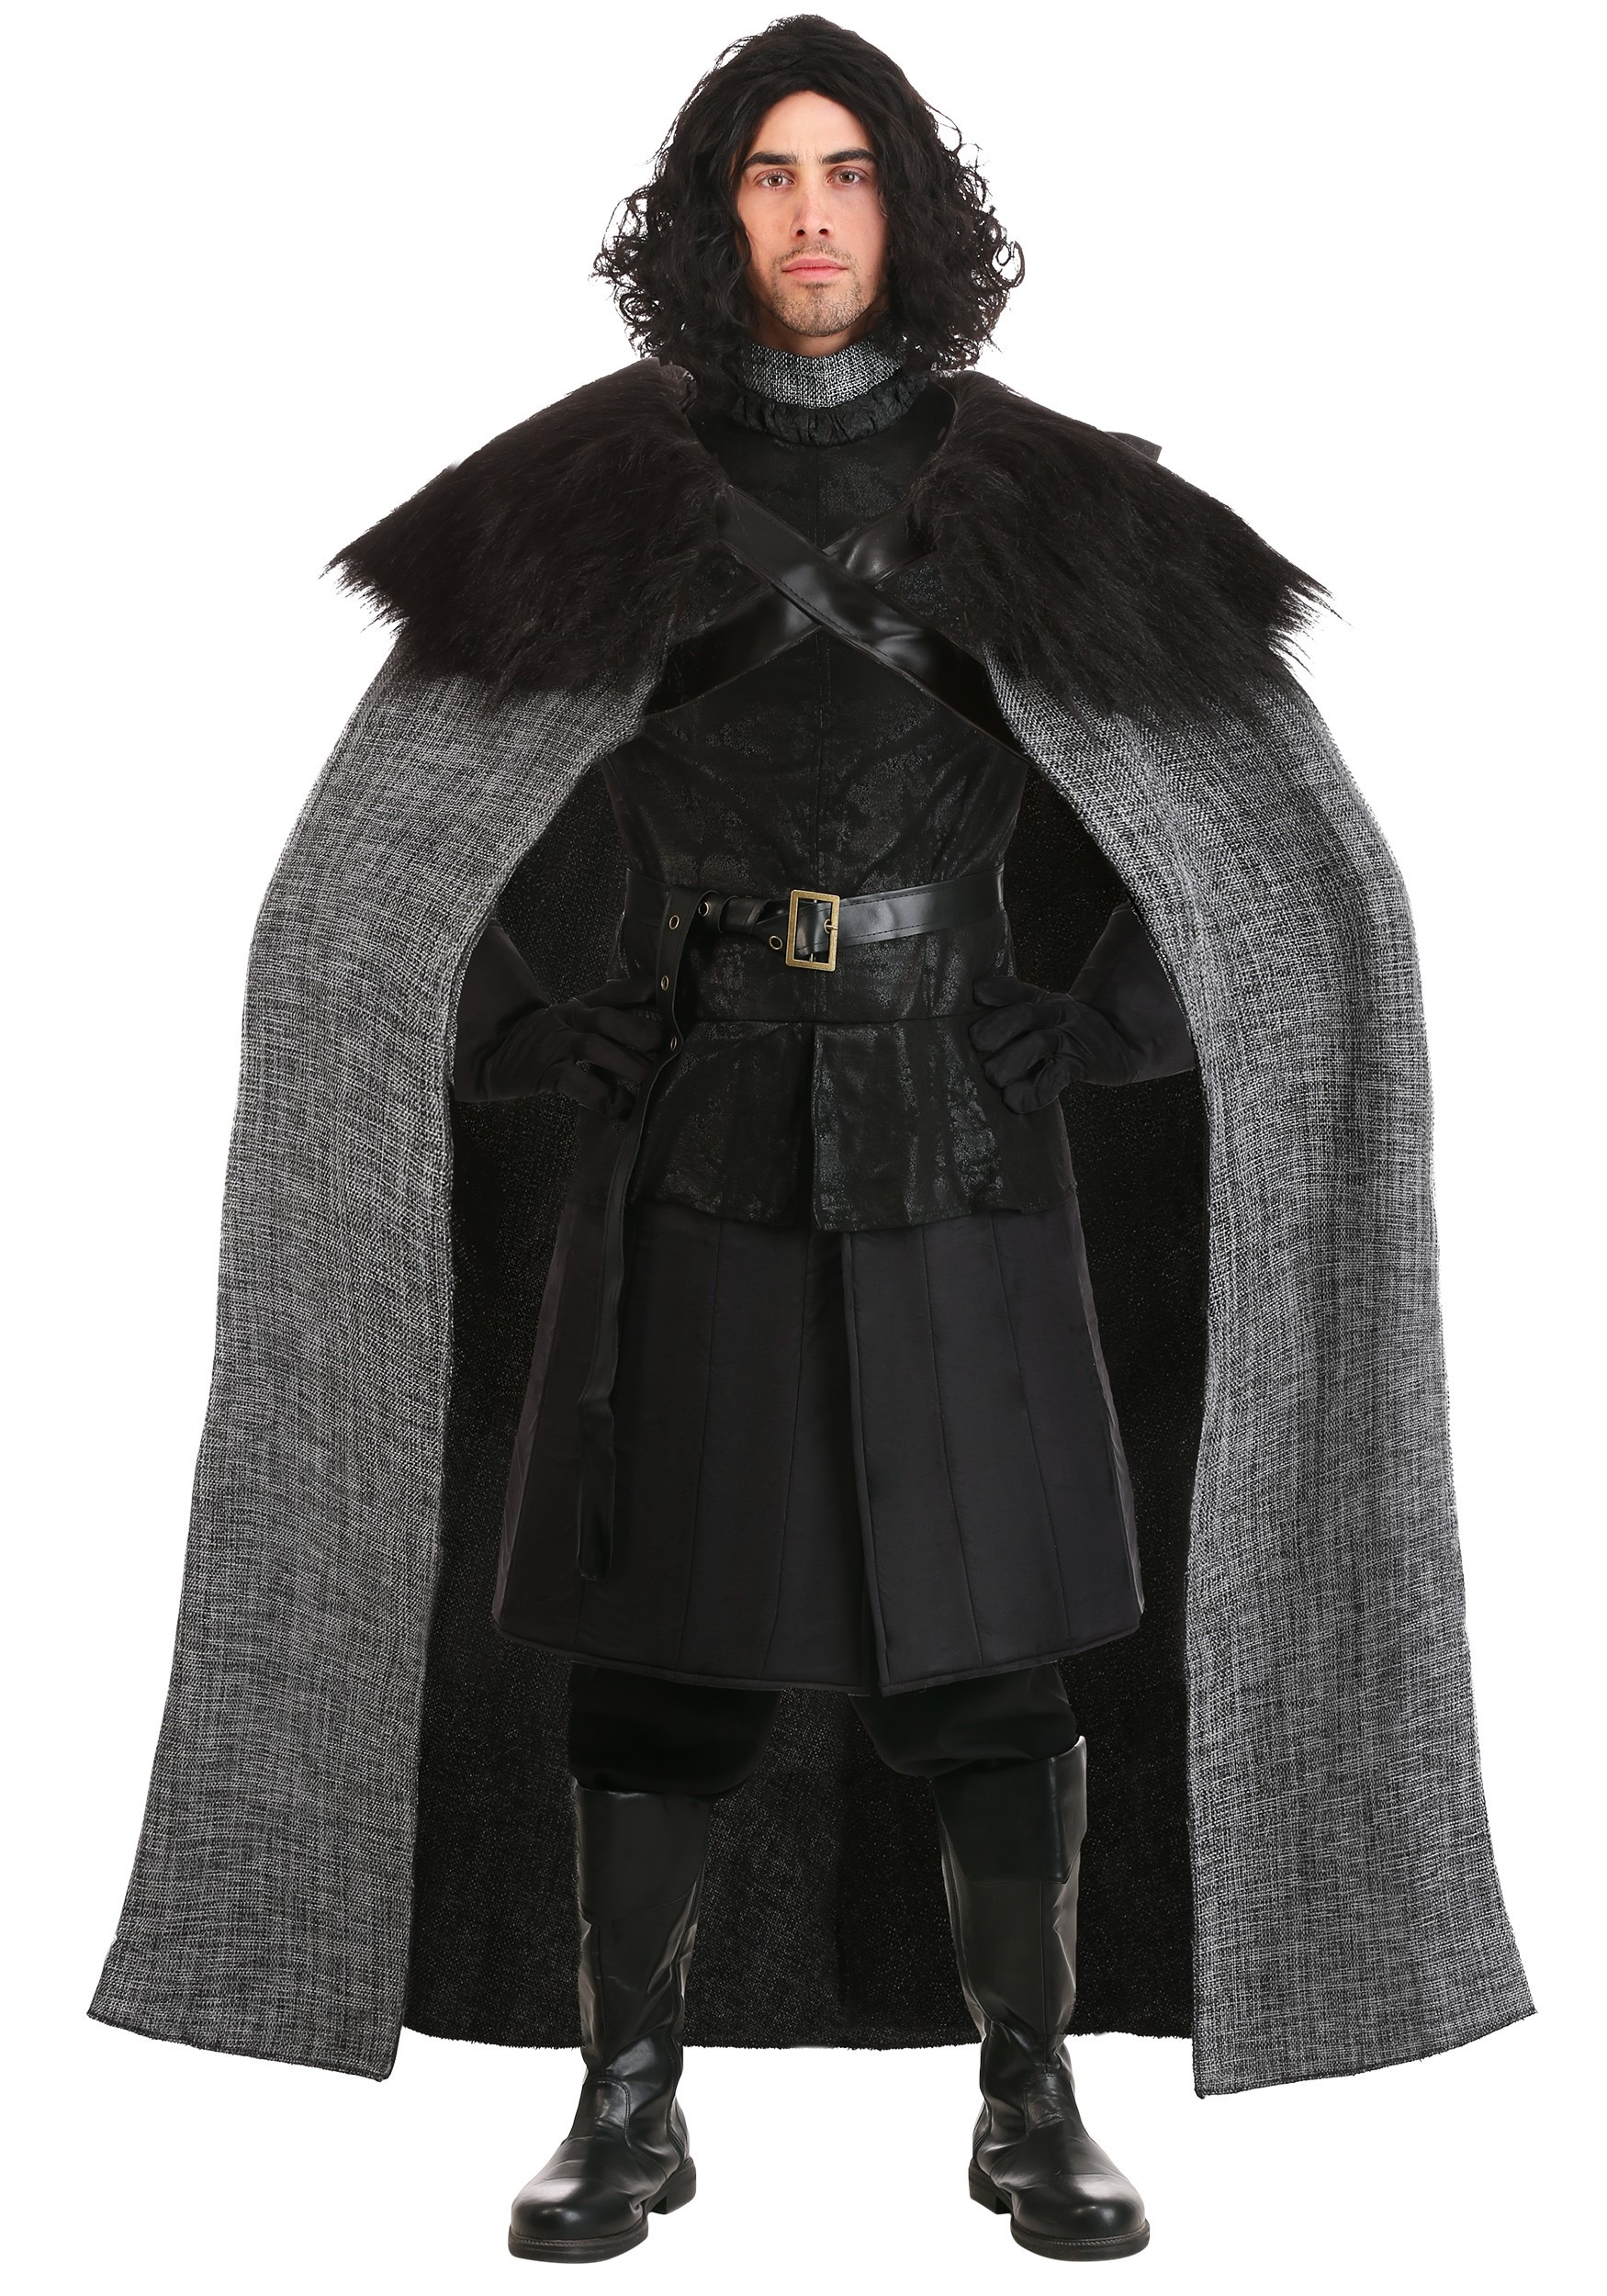 Dark Northern King Costume for Adults